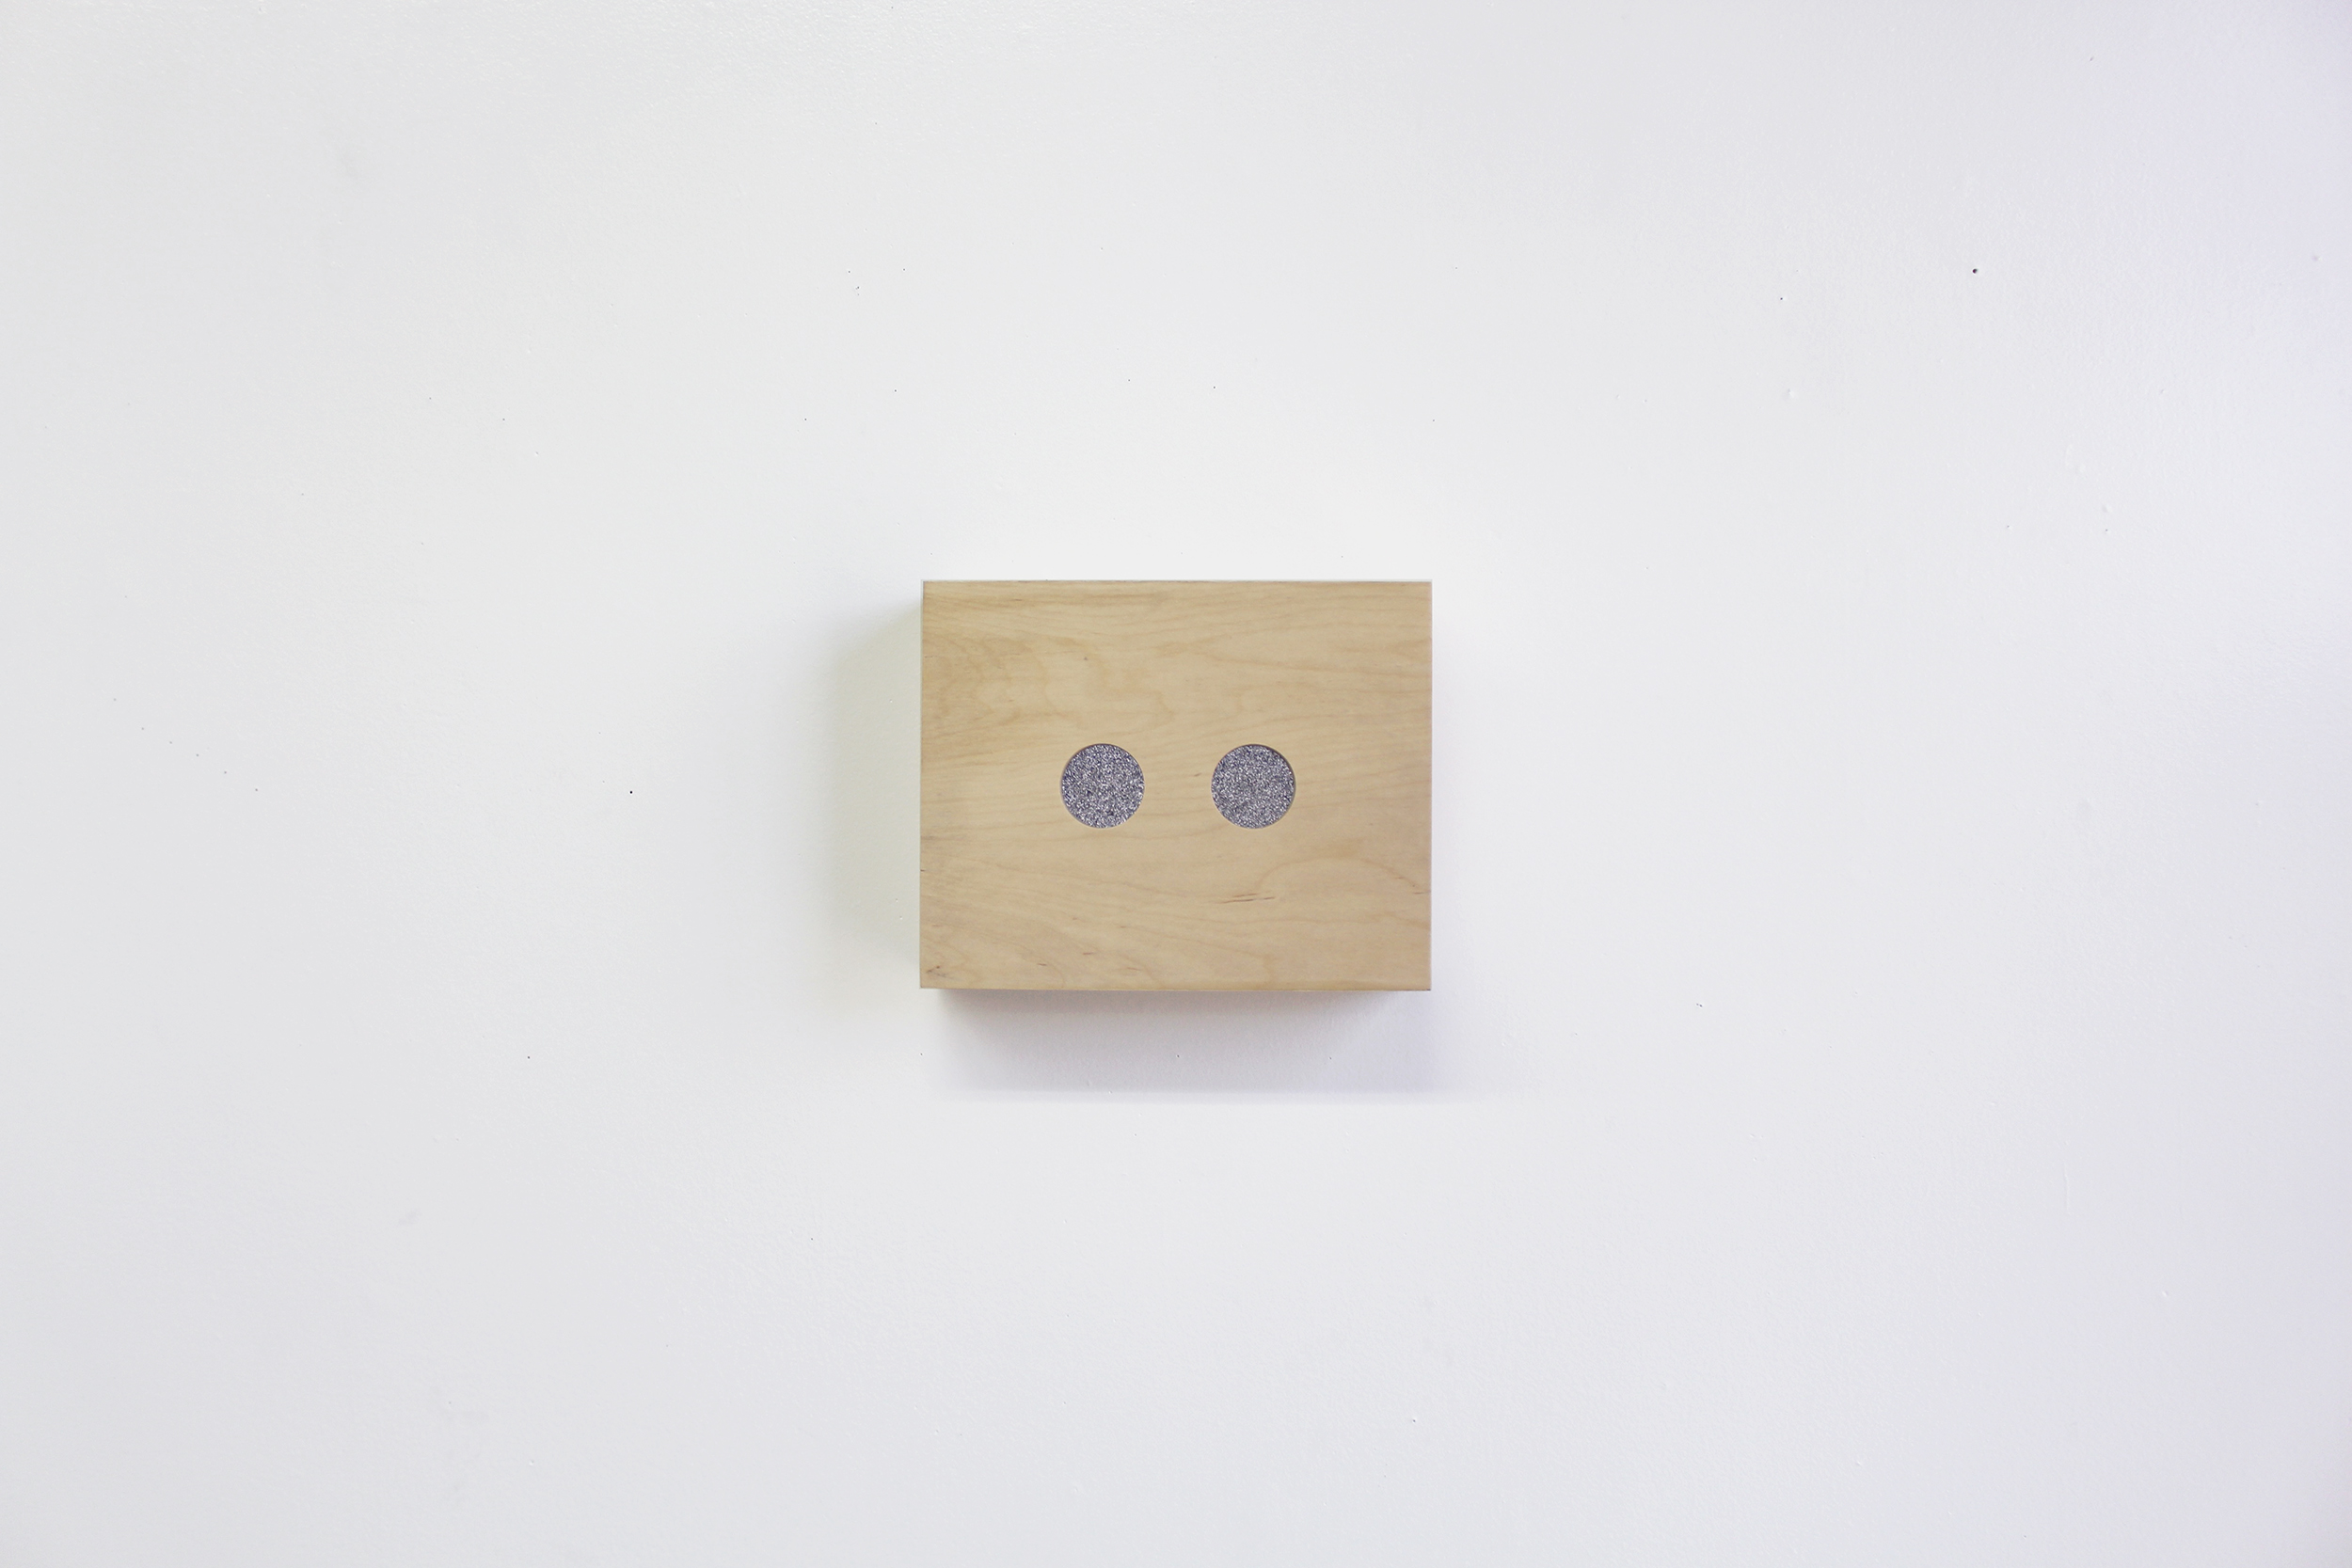 Birch plywood, single-channel video loop